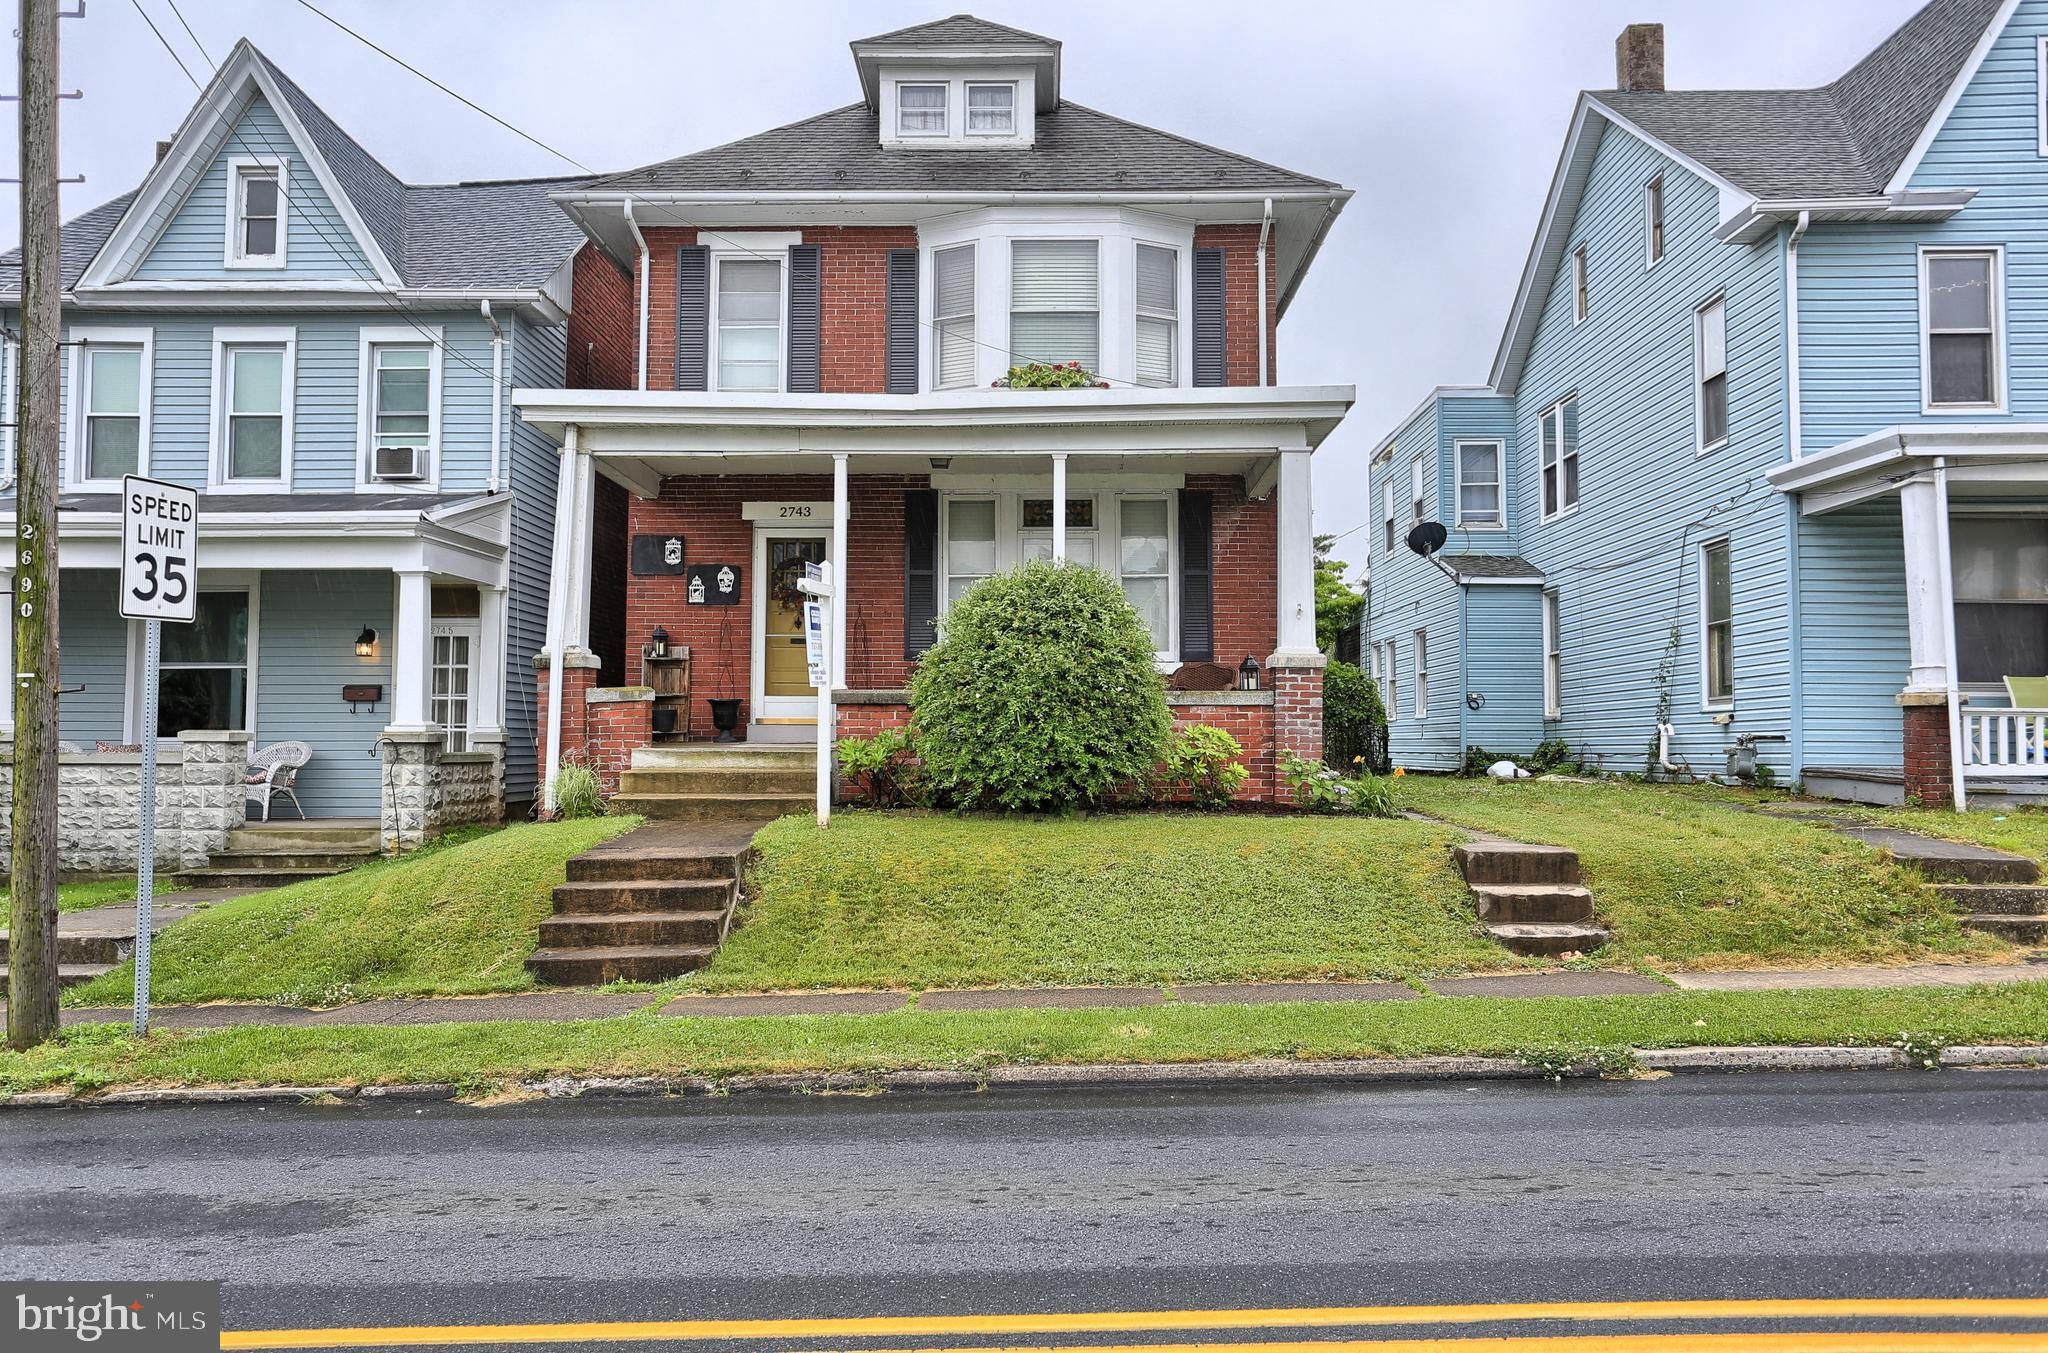 2743 CANBY STREET, HARRISBURG, PA 17103